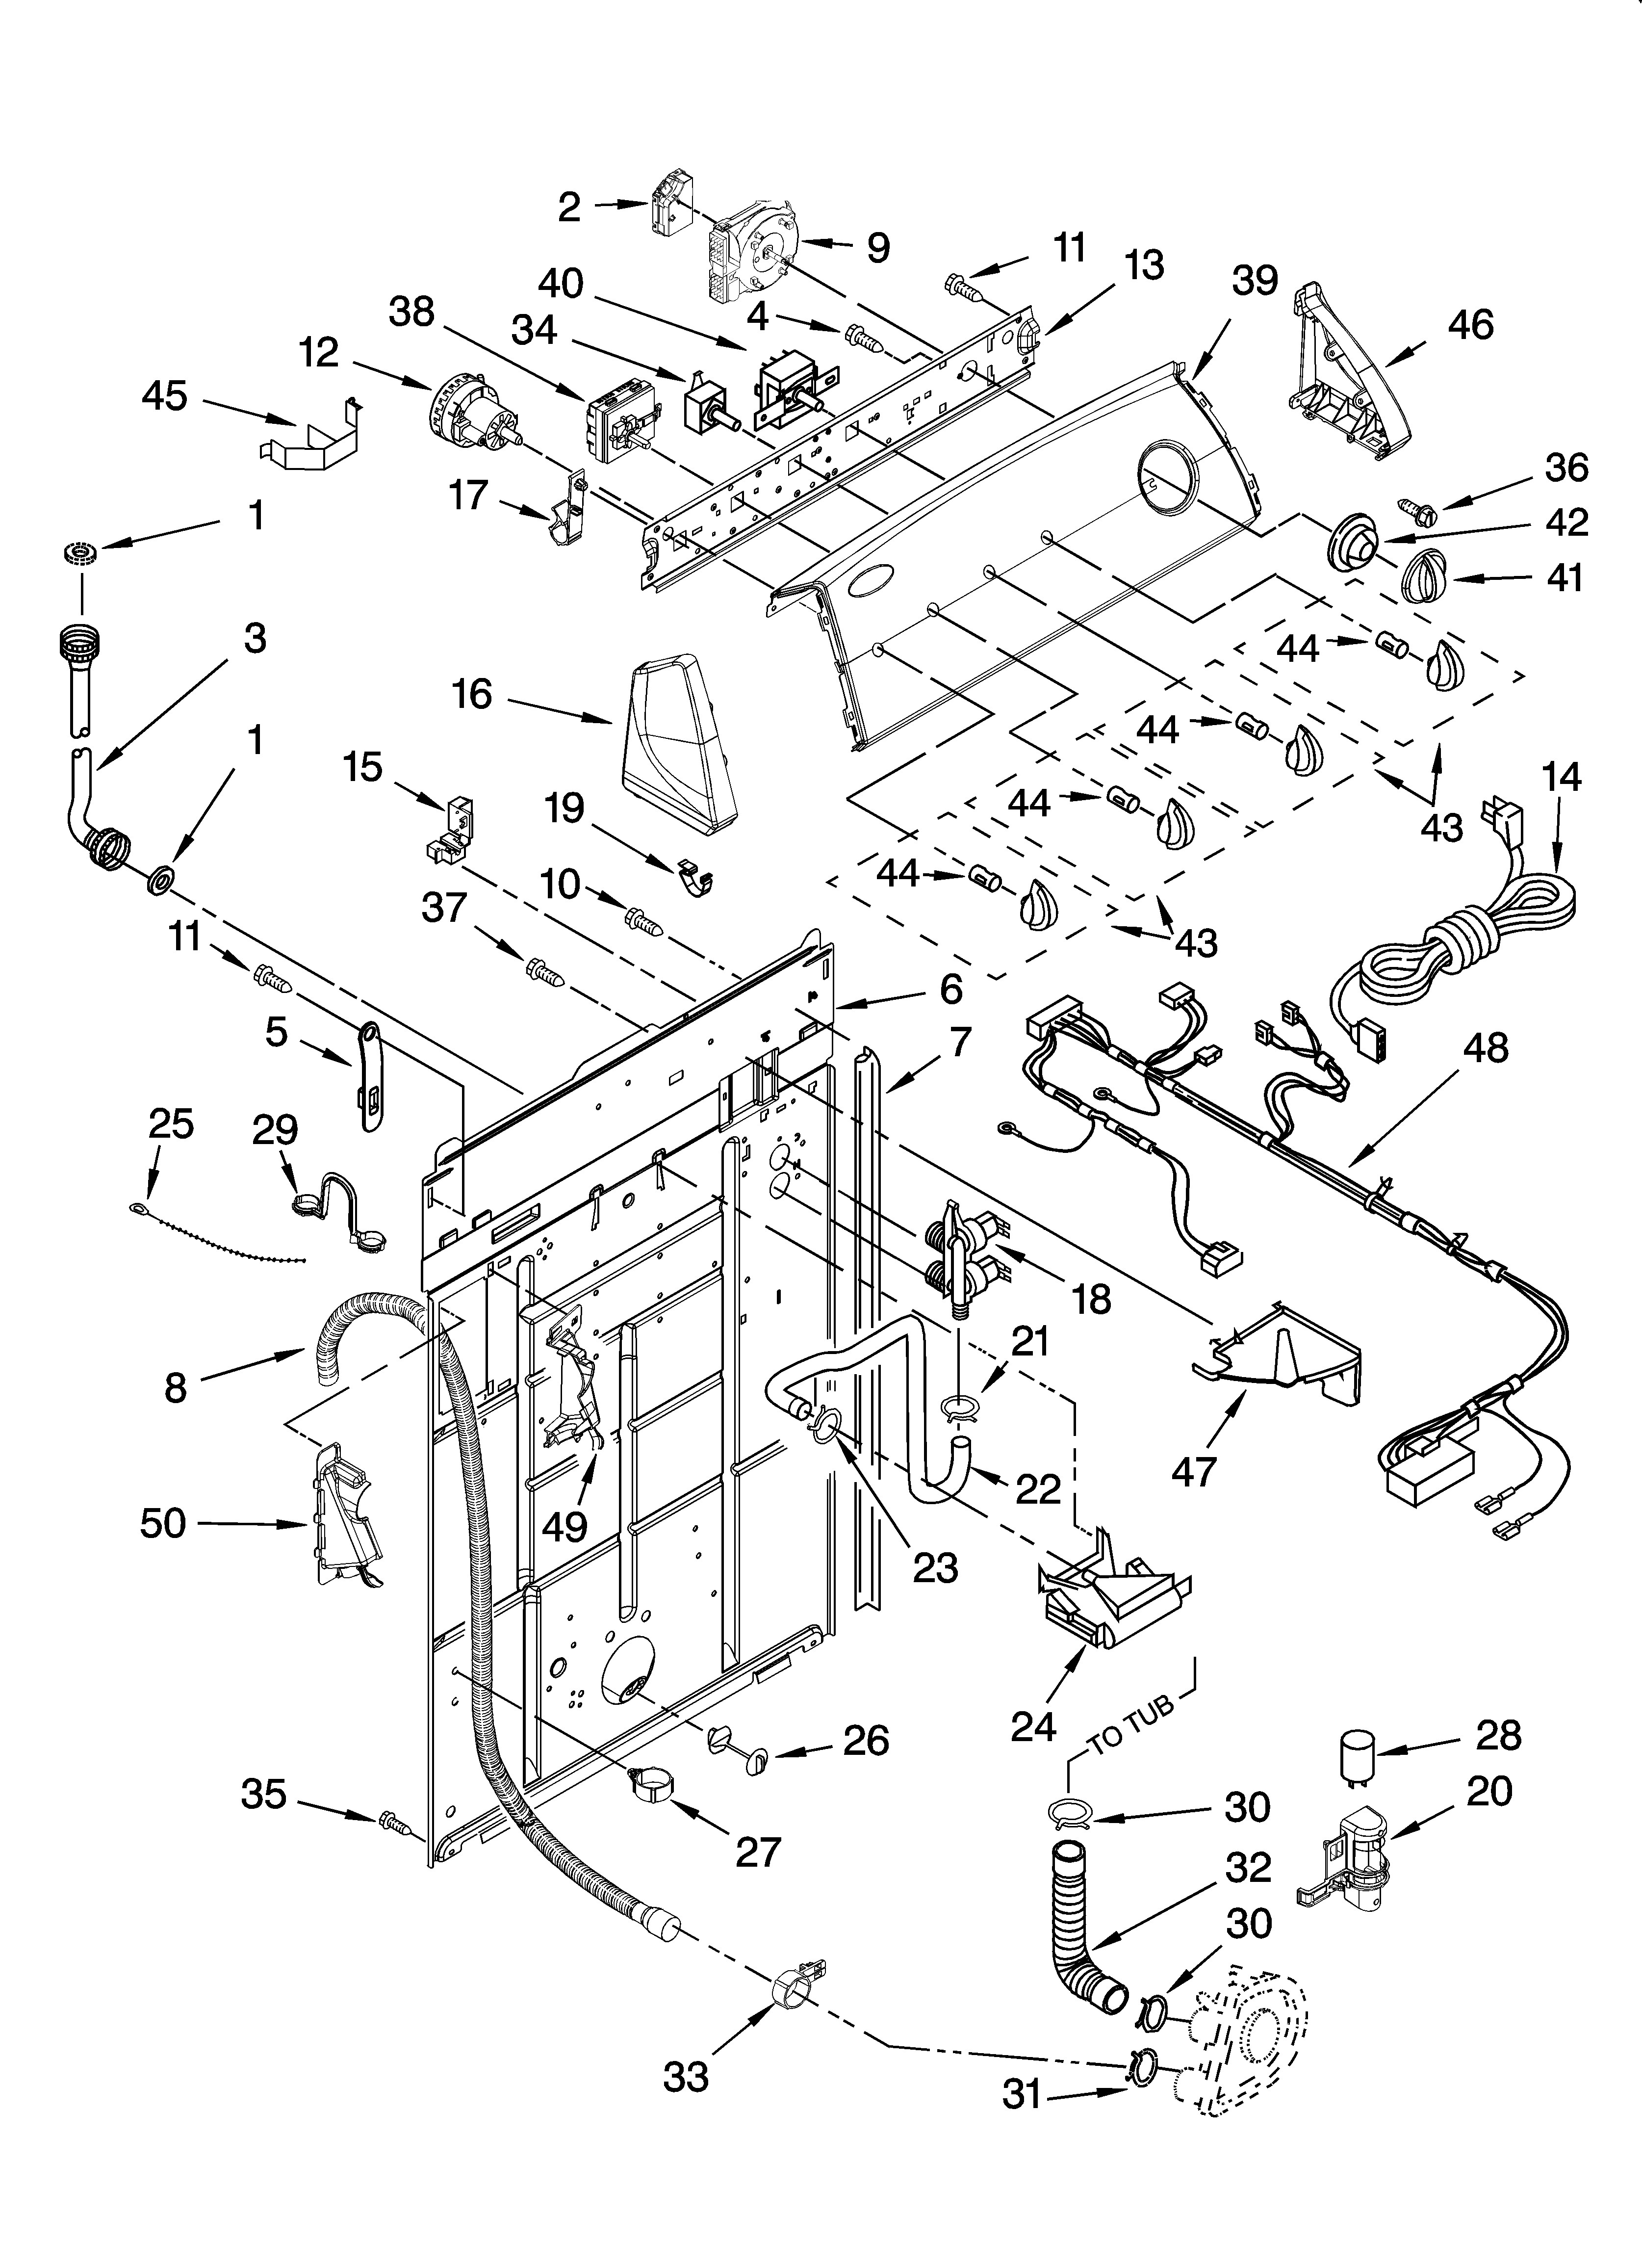 whirlpool parts whirlpool dryer parts diagram